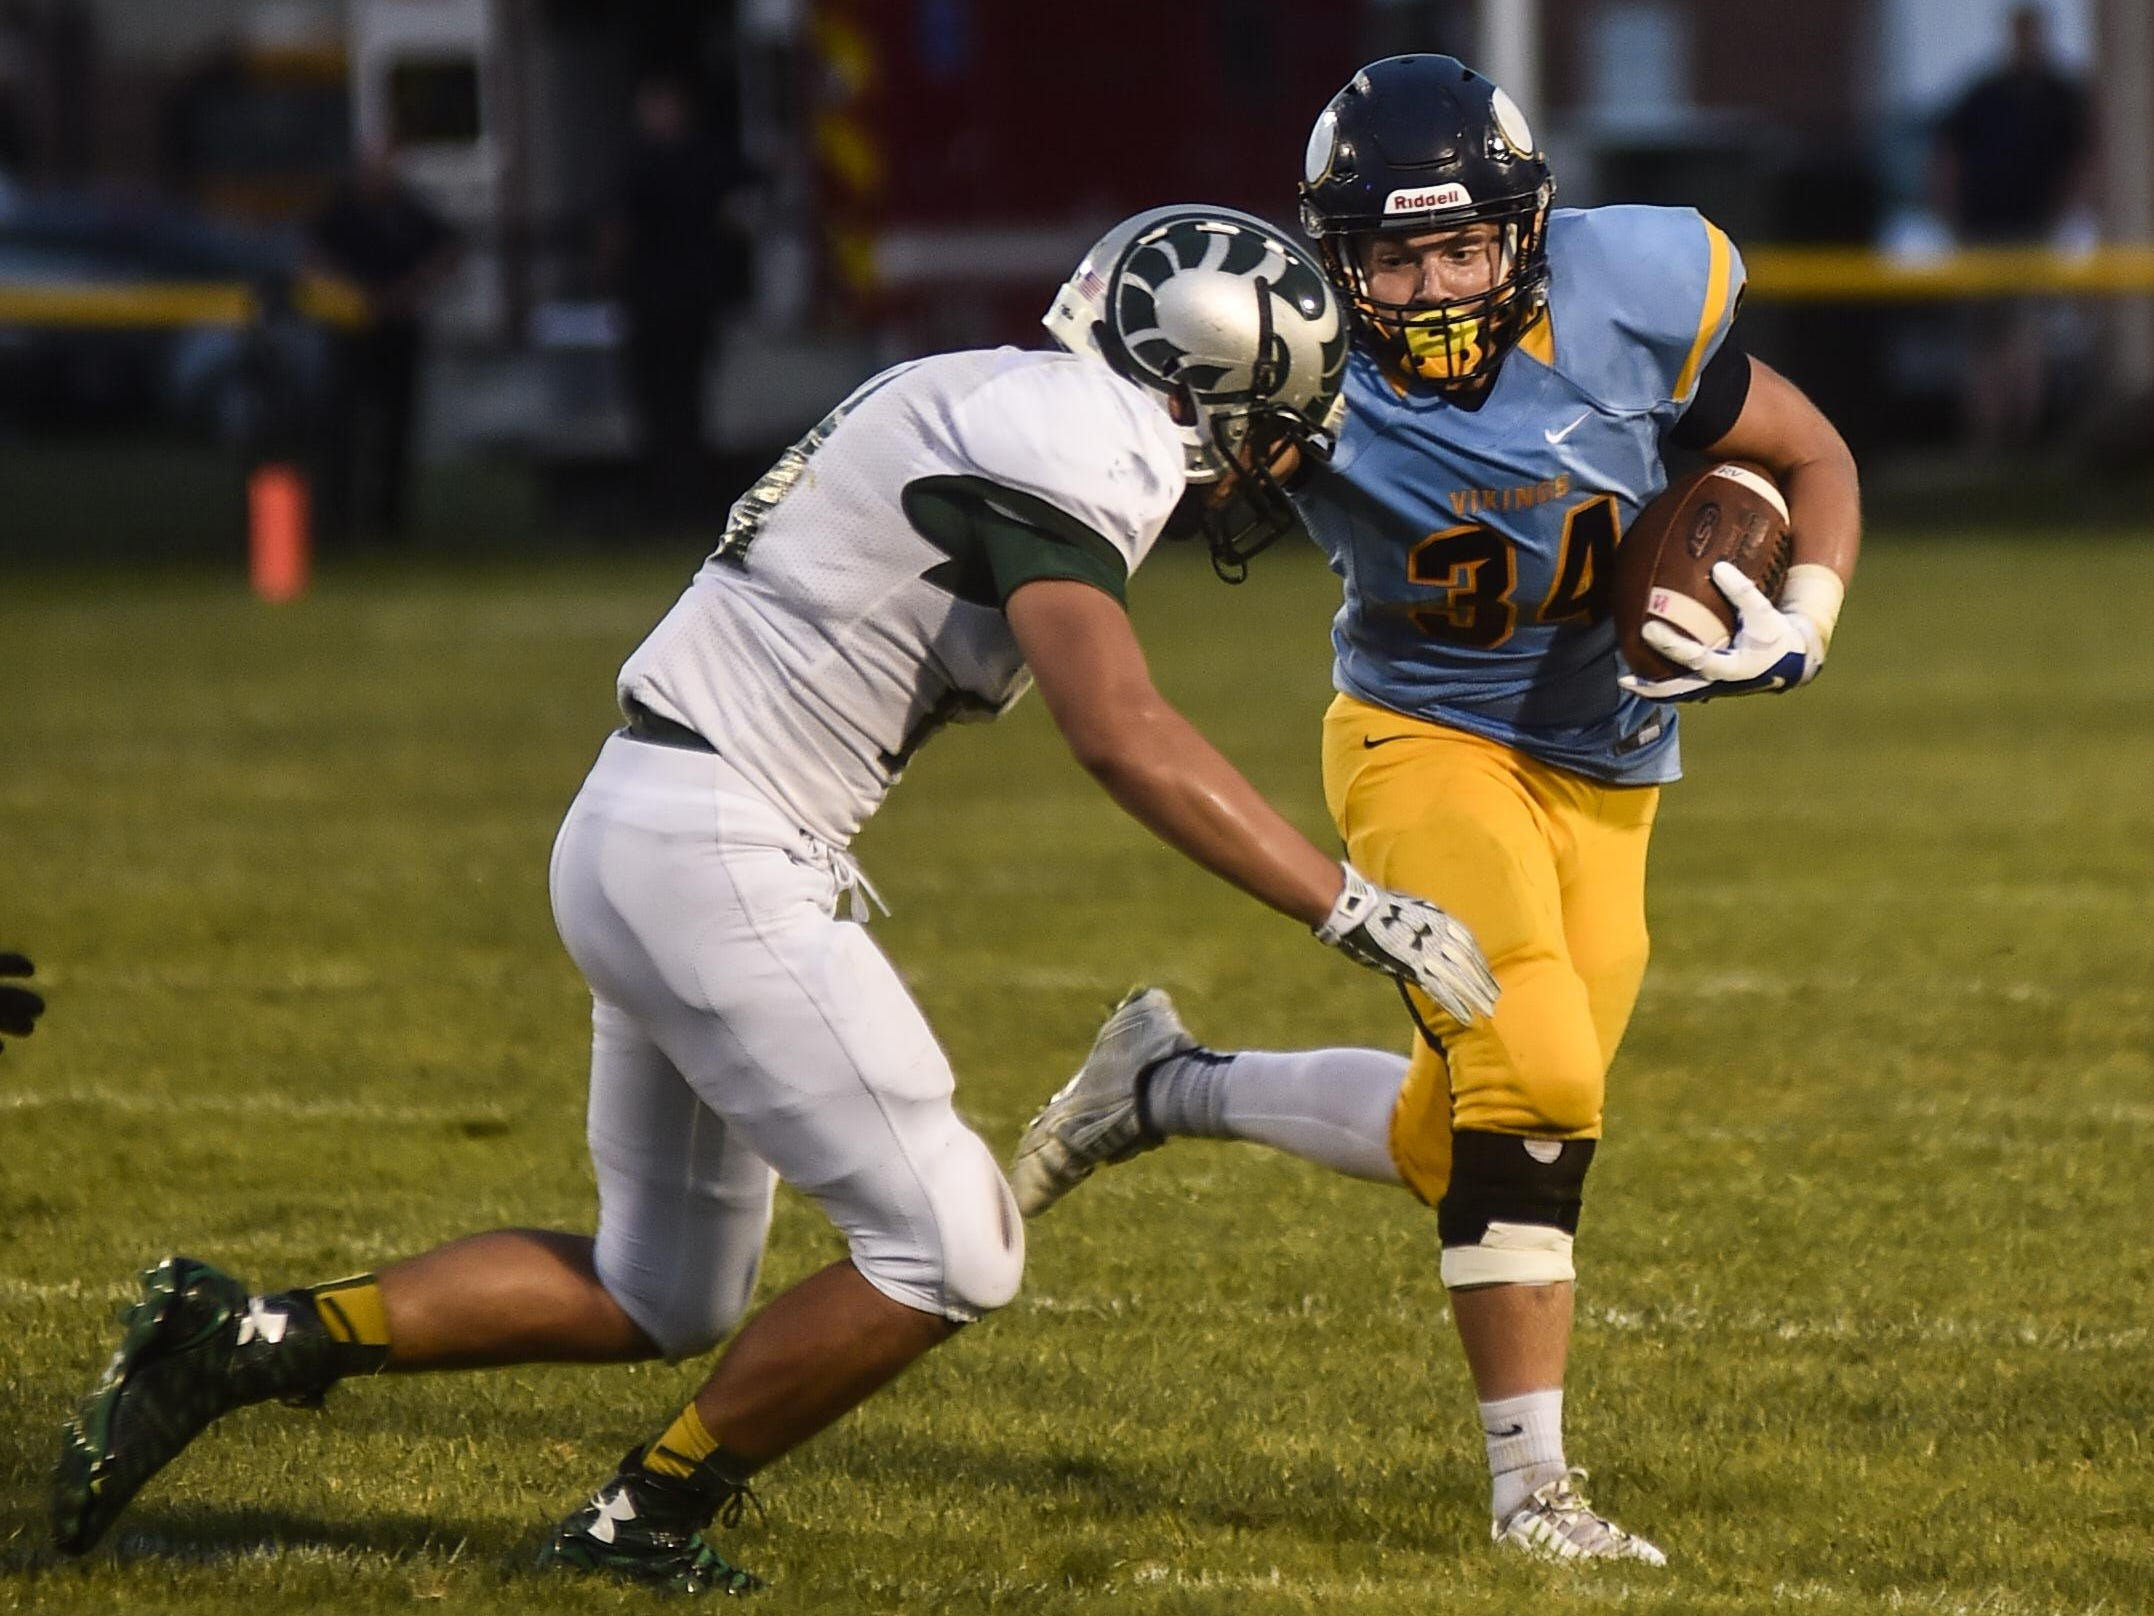 River Valley's Zach Hill looks to break through the Ram's line during the Madison vs River Valley football game on Friday.